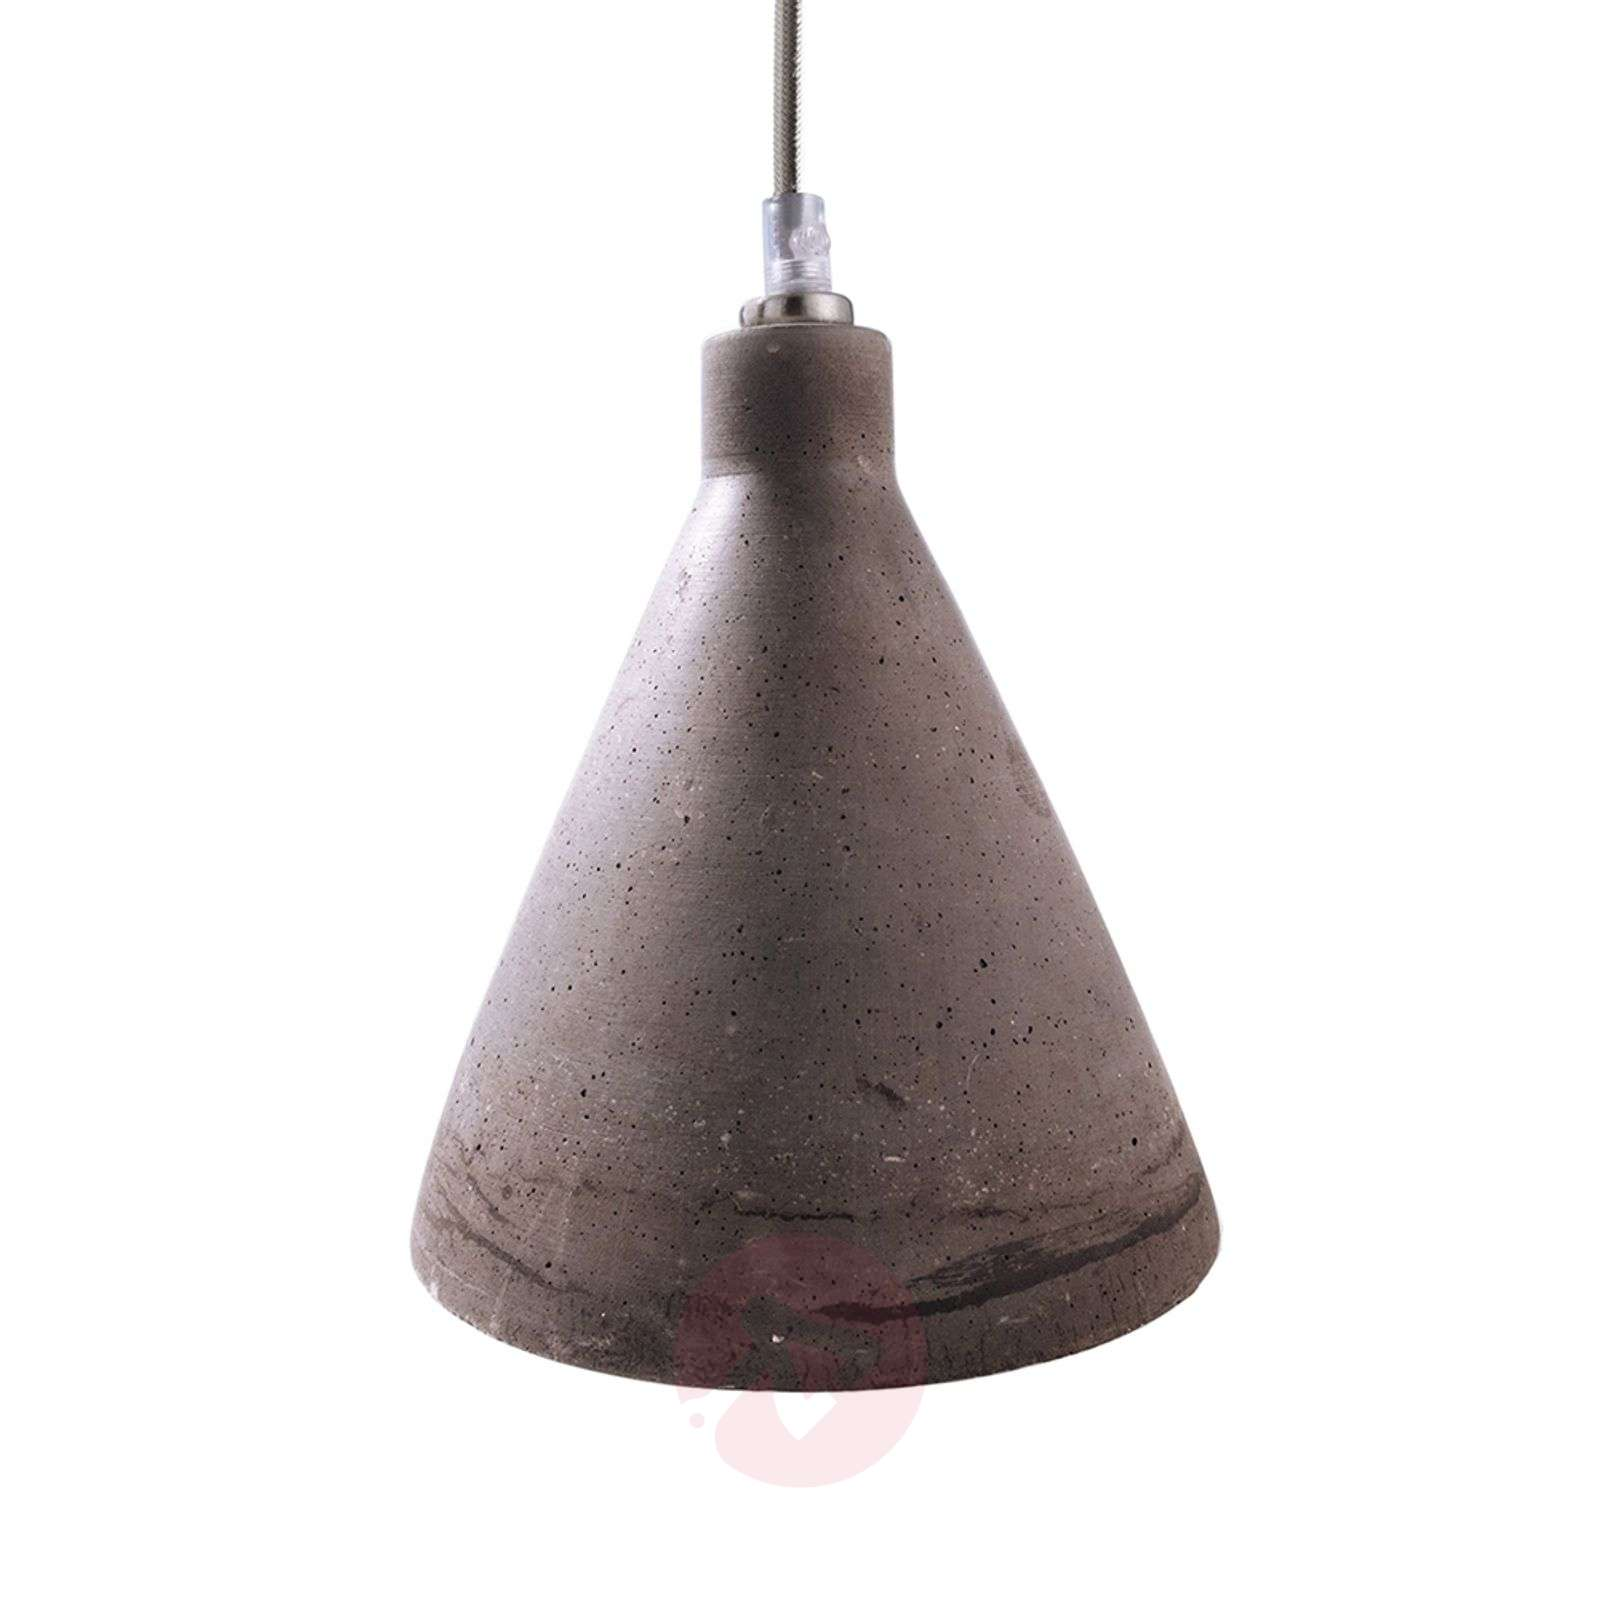 Suspension originale Concreto II-2500106-01